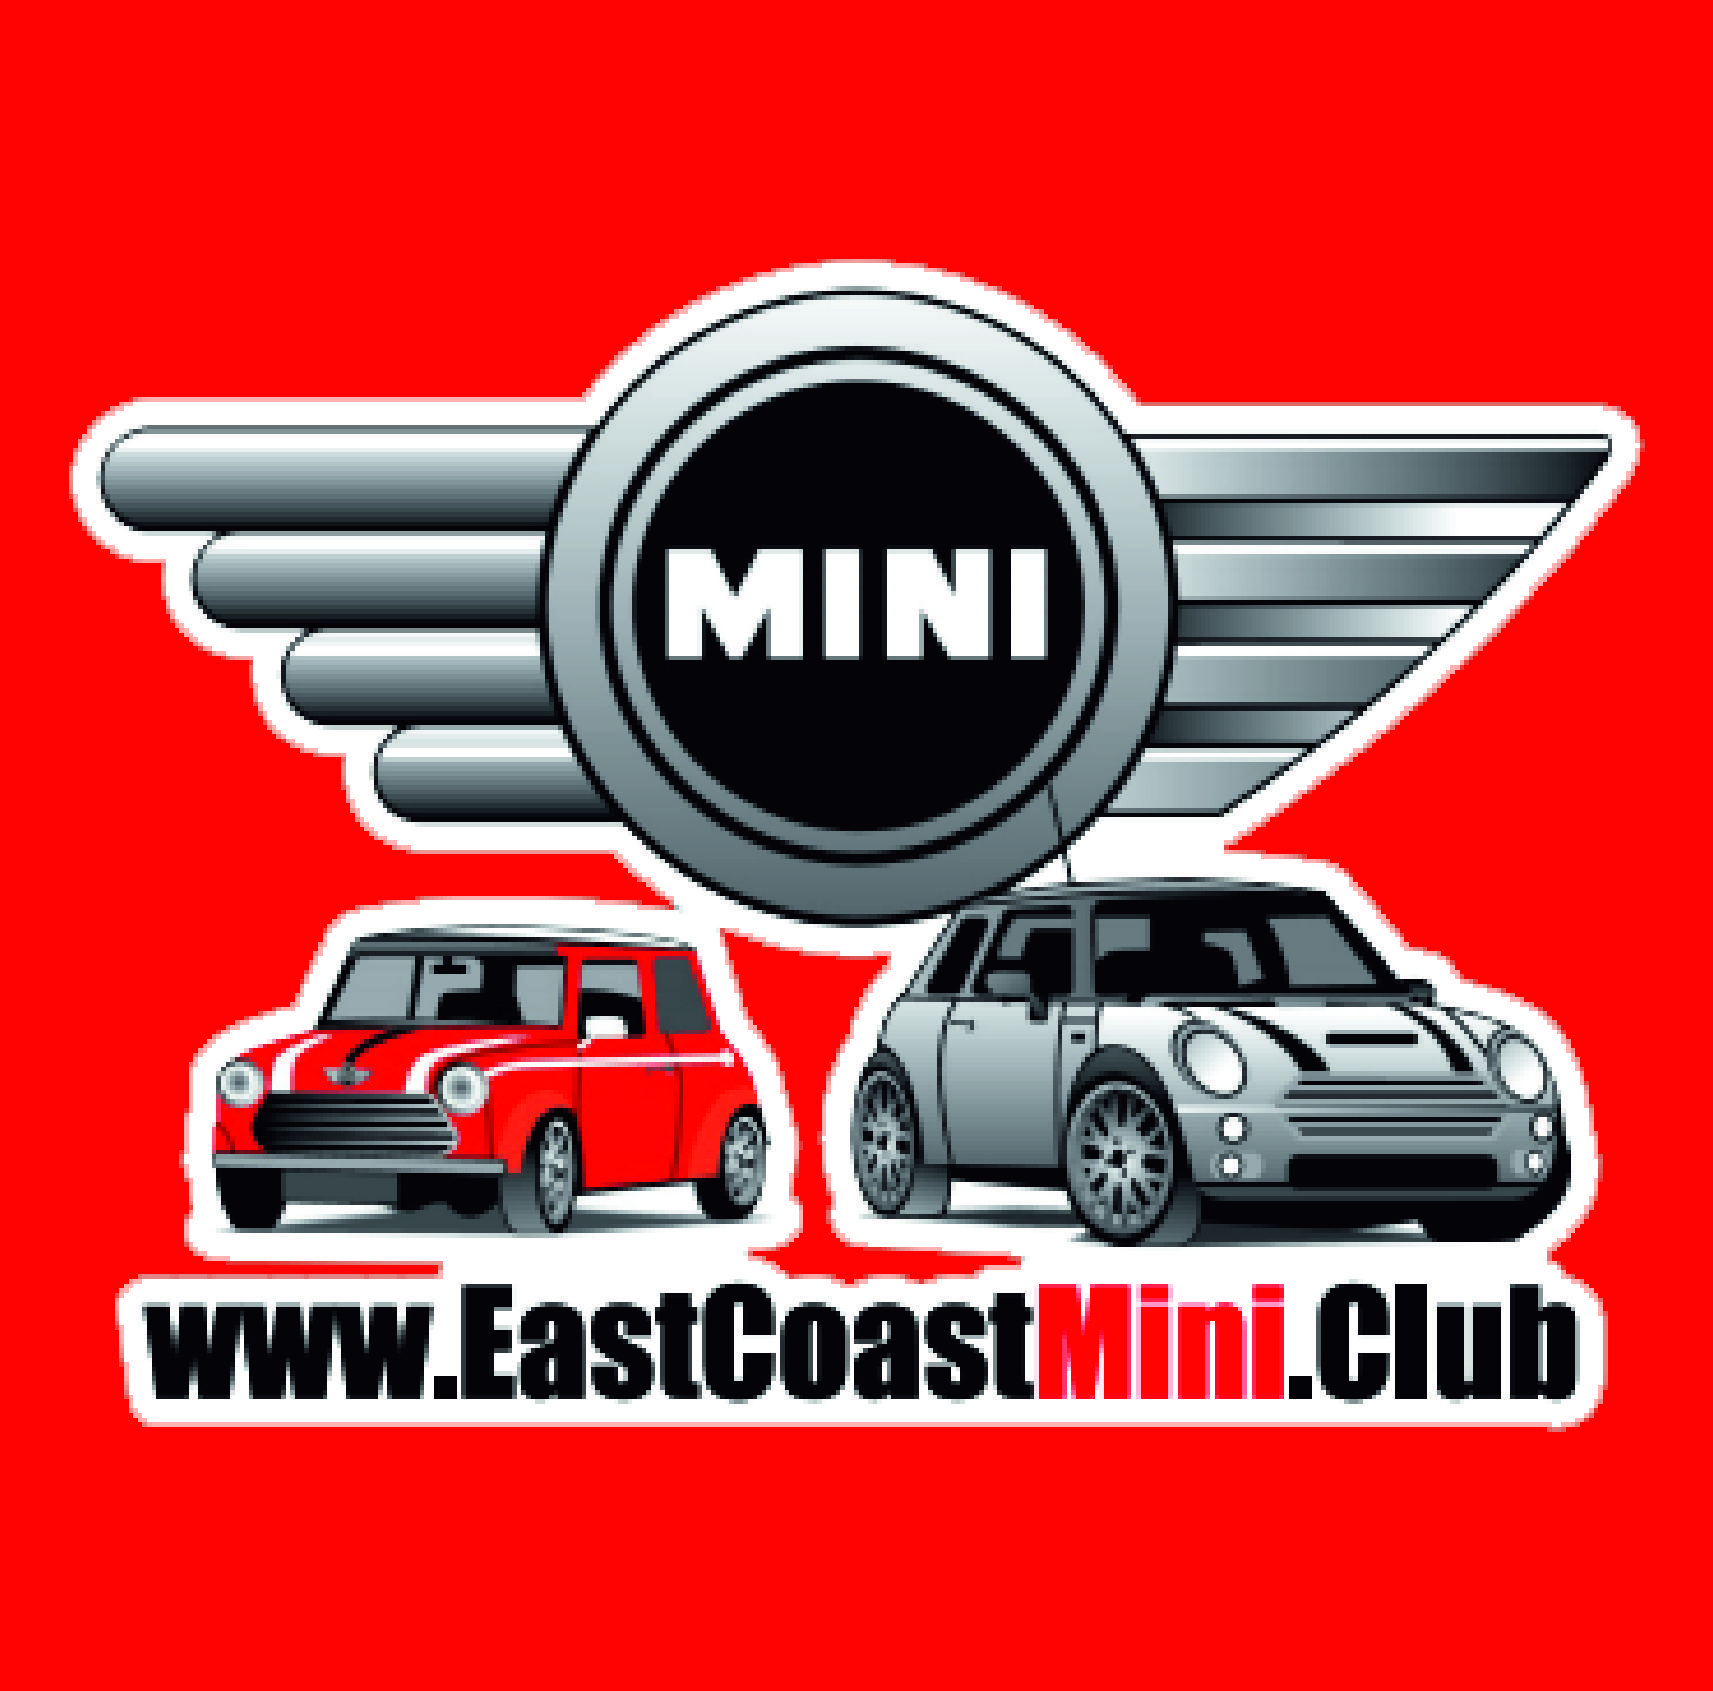 East coast mini club logo sigma embroidery